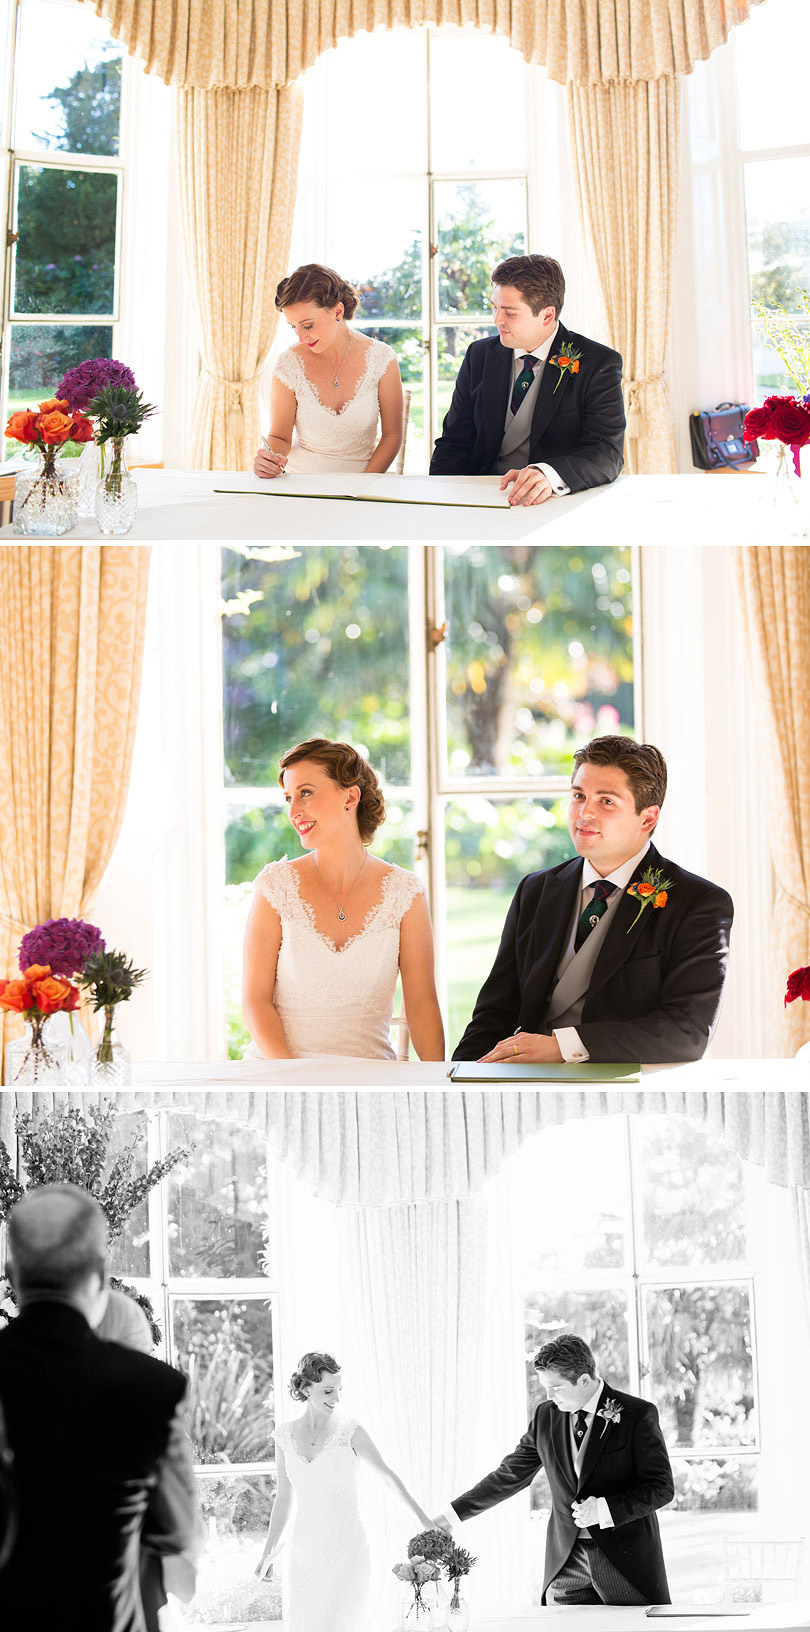 L&I_Cambridge-Cottage-Kew-Gardens-Wedding_13.jpg